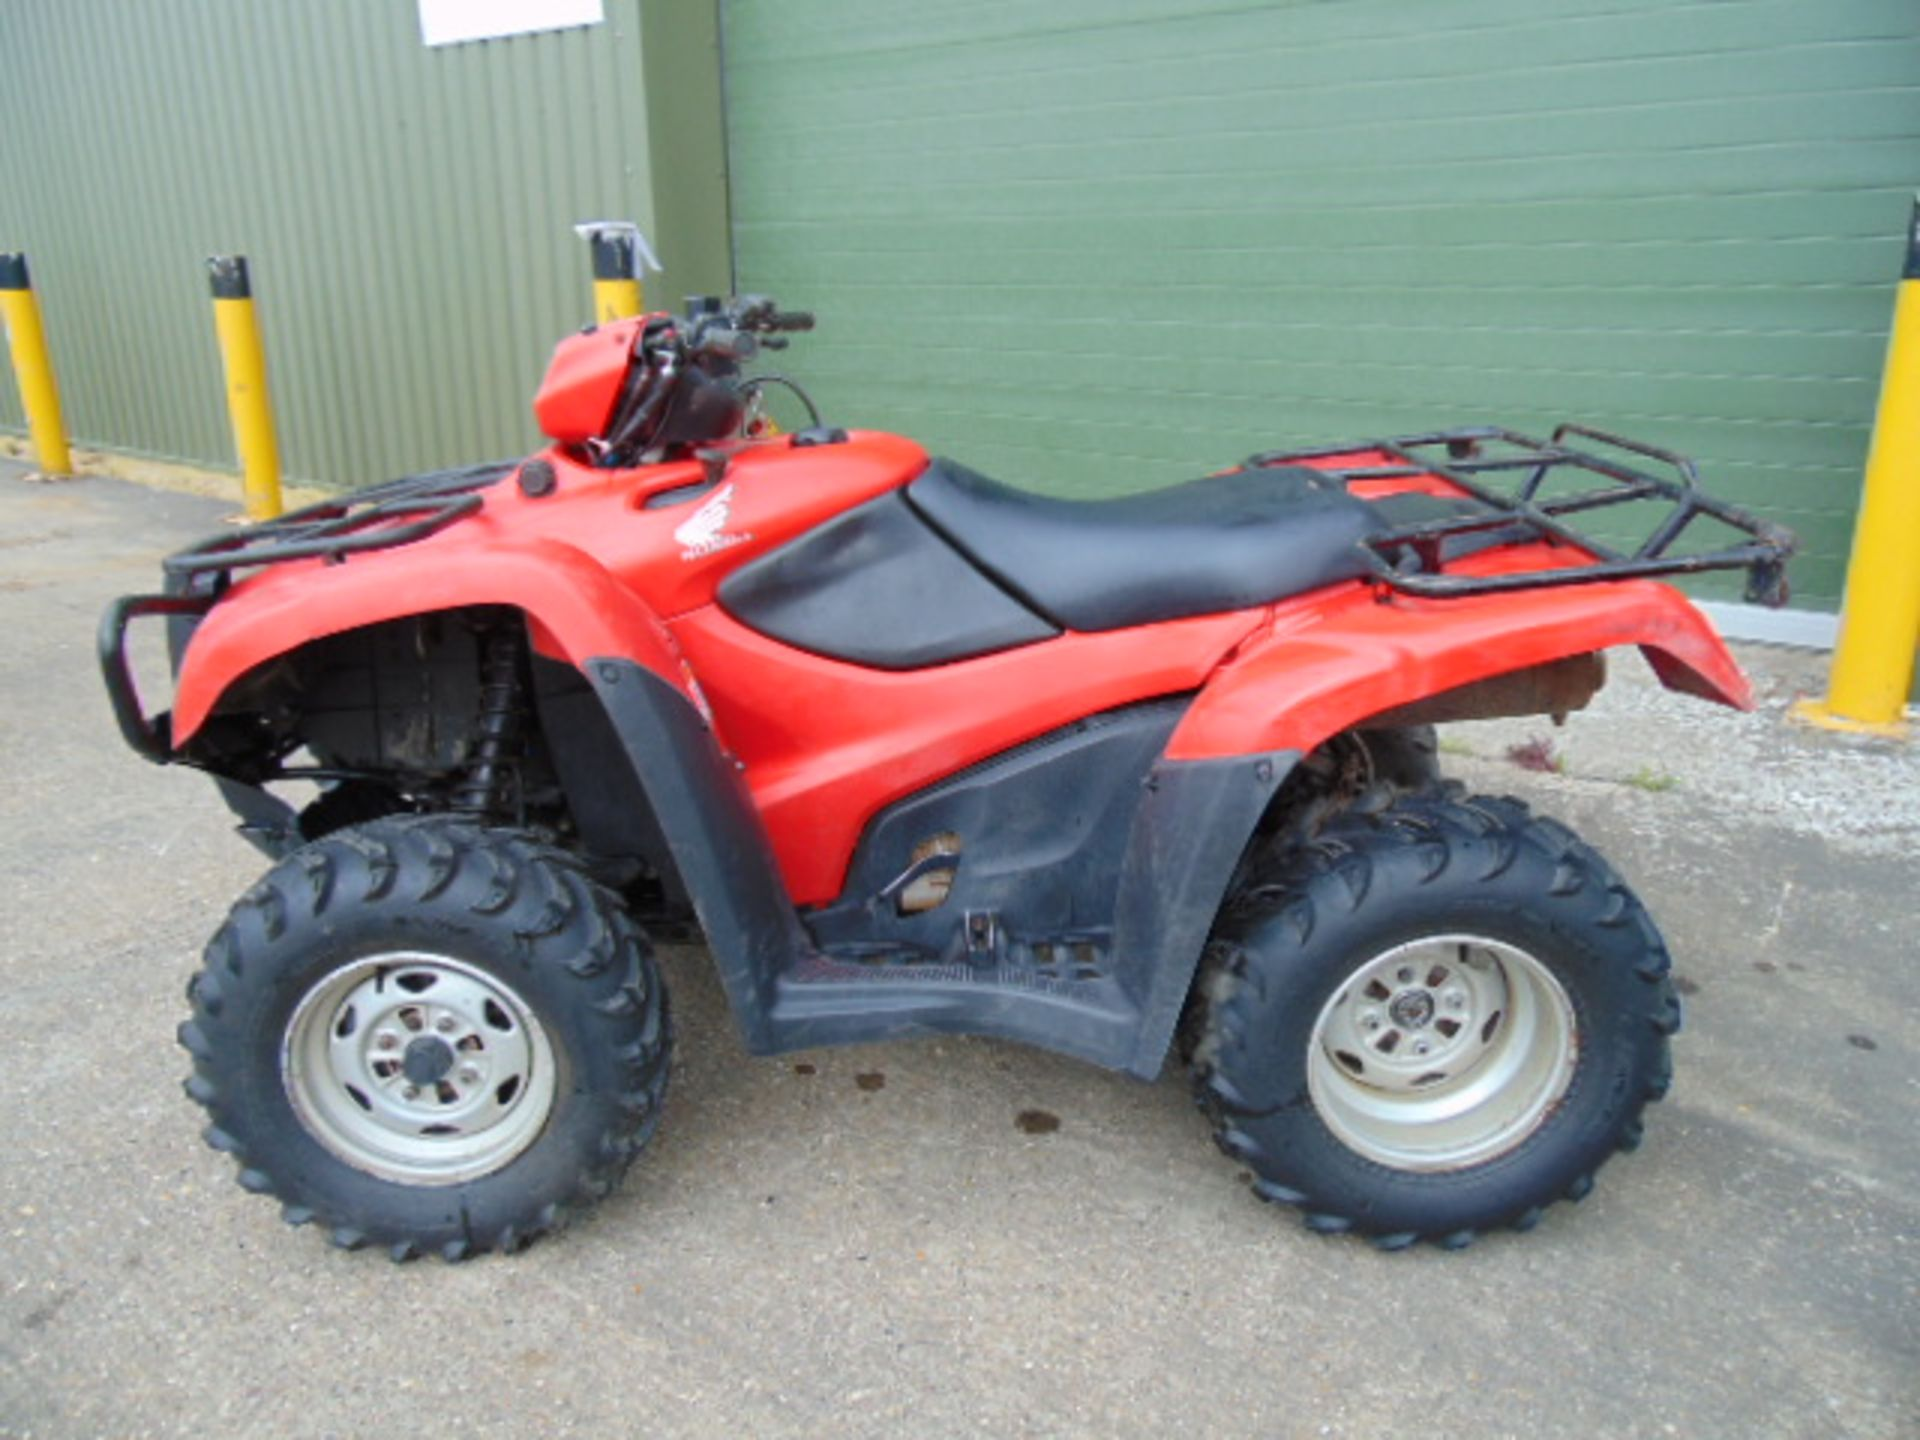 Honda TRX 500 4WD Quad Bike ONLY 2,300 HOURS! - Image 5 of 20